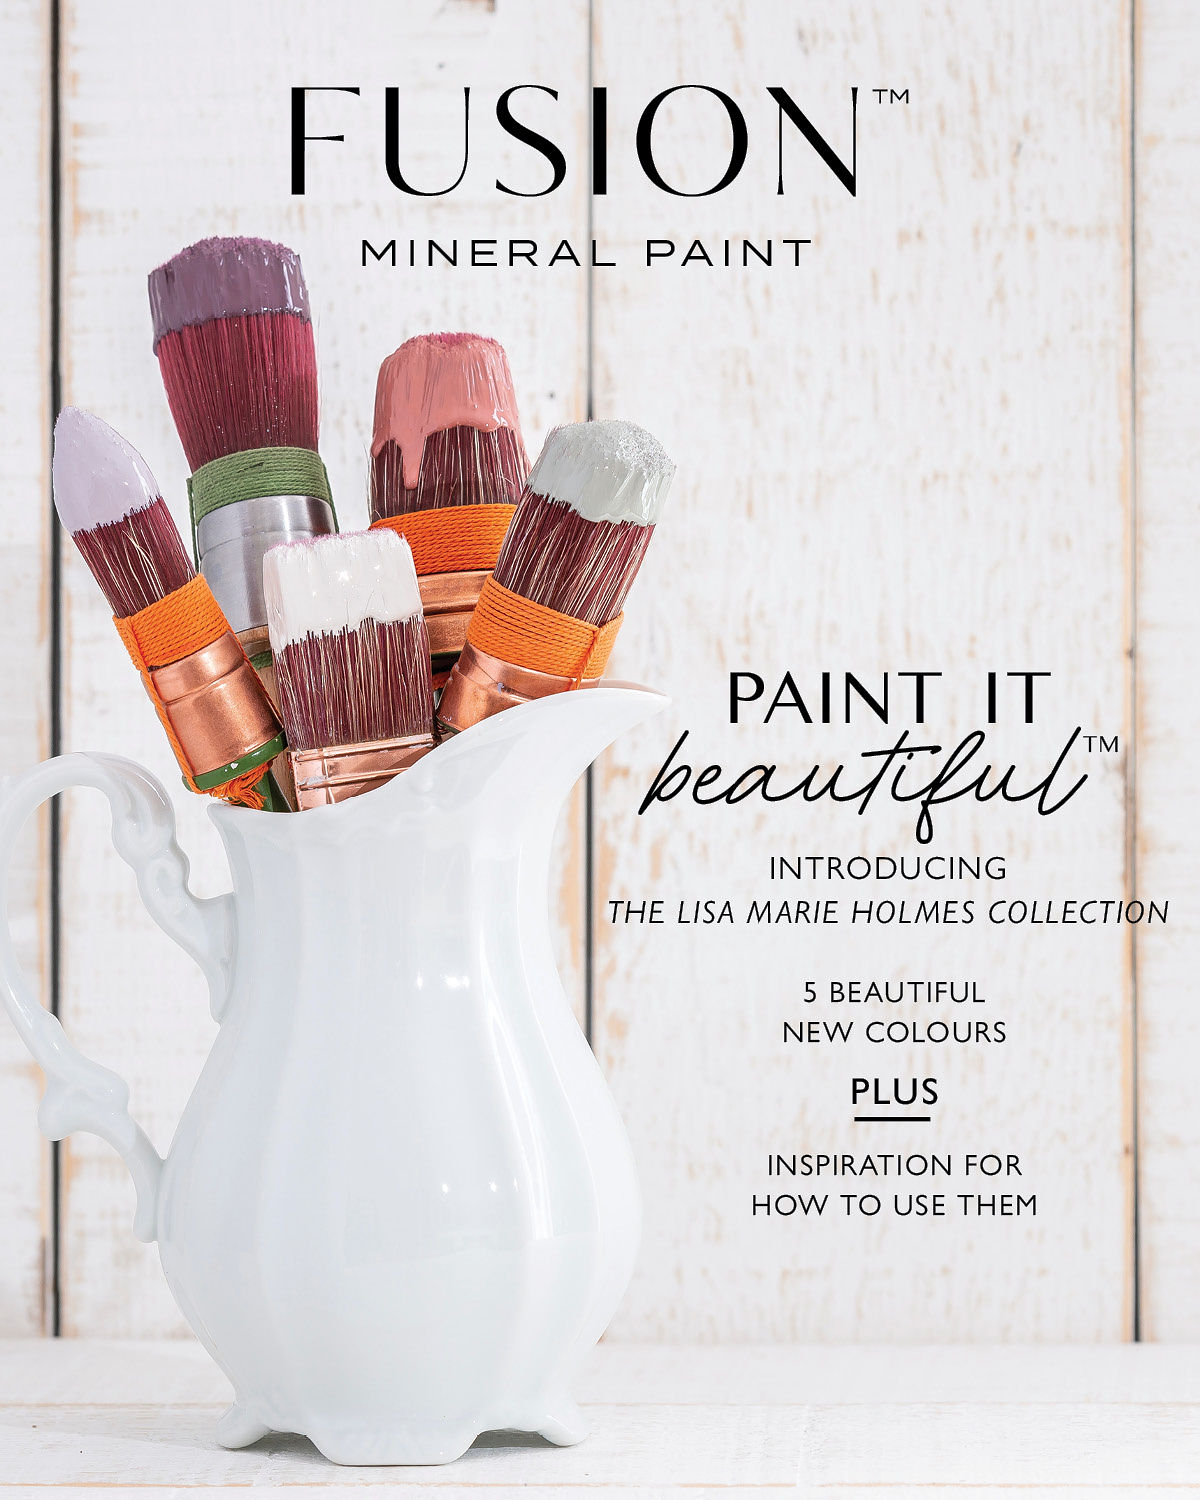 Fusion Magazine Featuring the New Fusion Mineral Paint Colours - Lisa Marie Holmes Collection